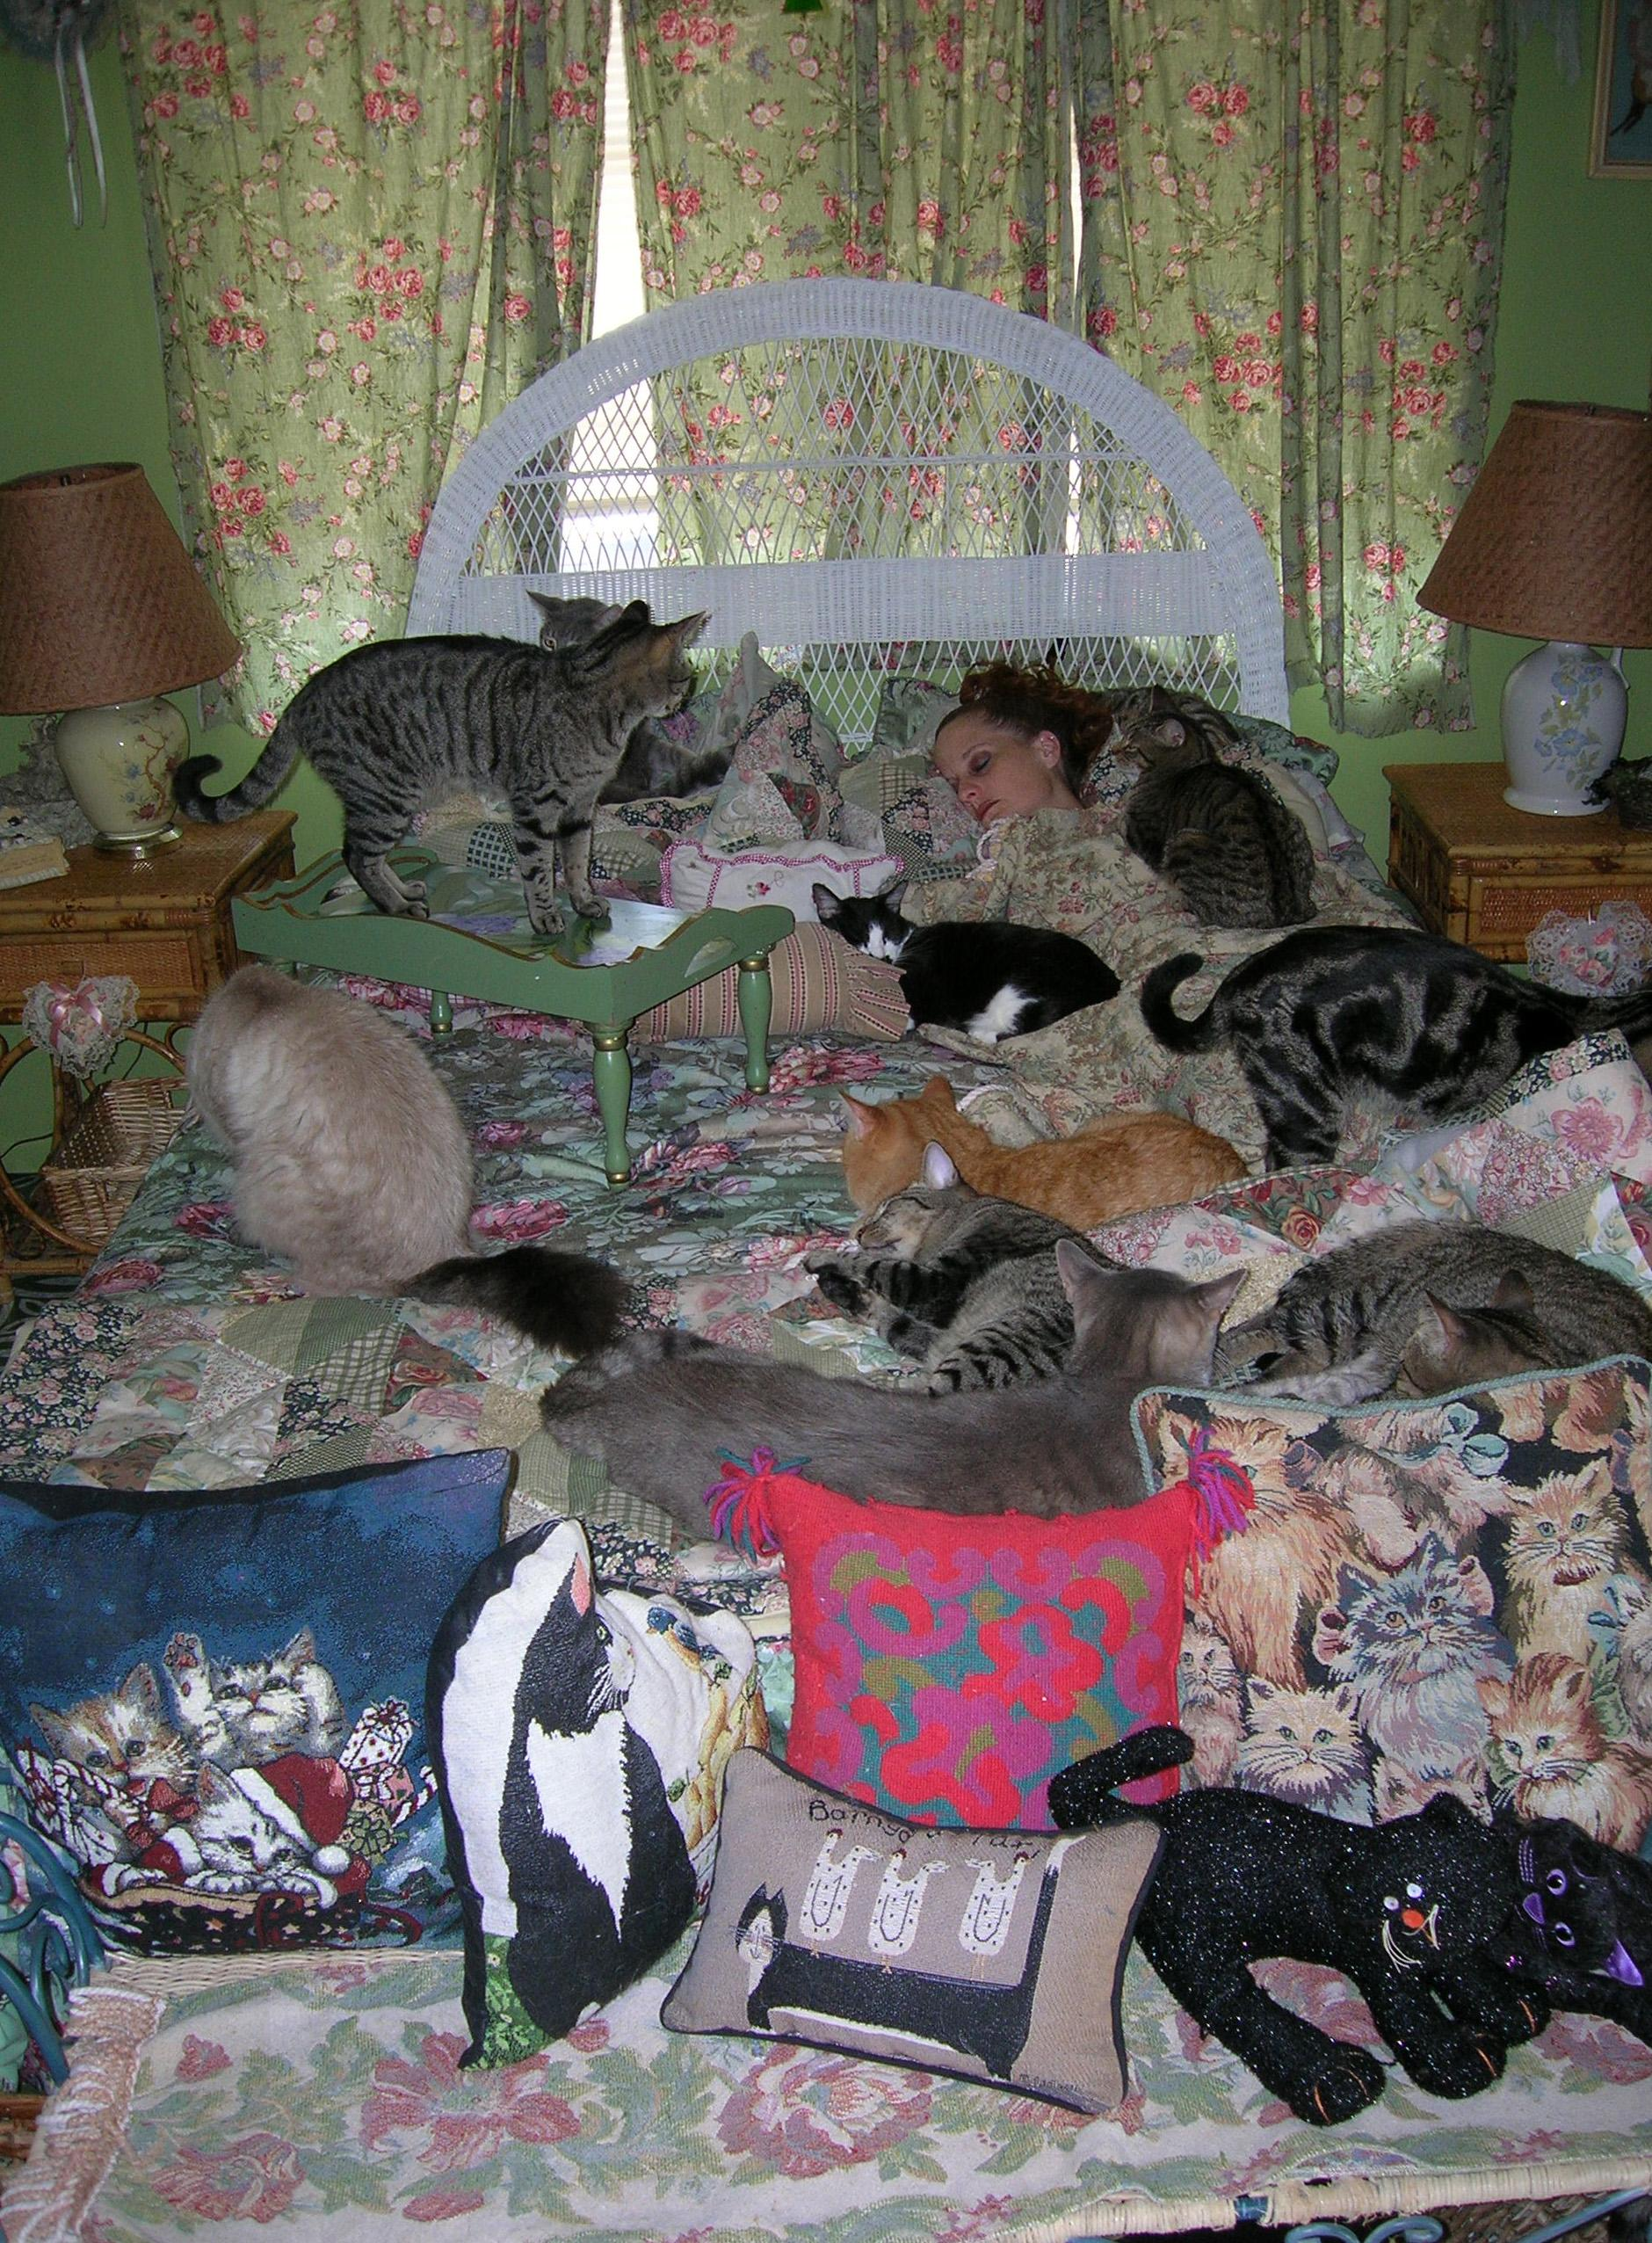 Jan07116174.tmp/Kittiesonbed.JPG